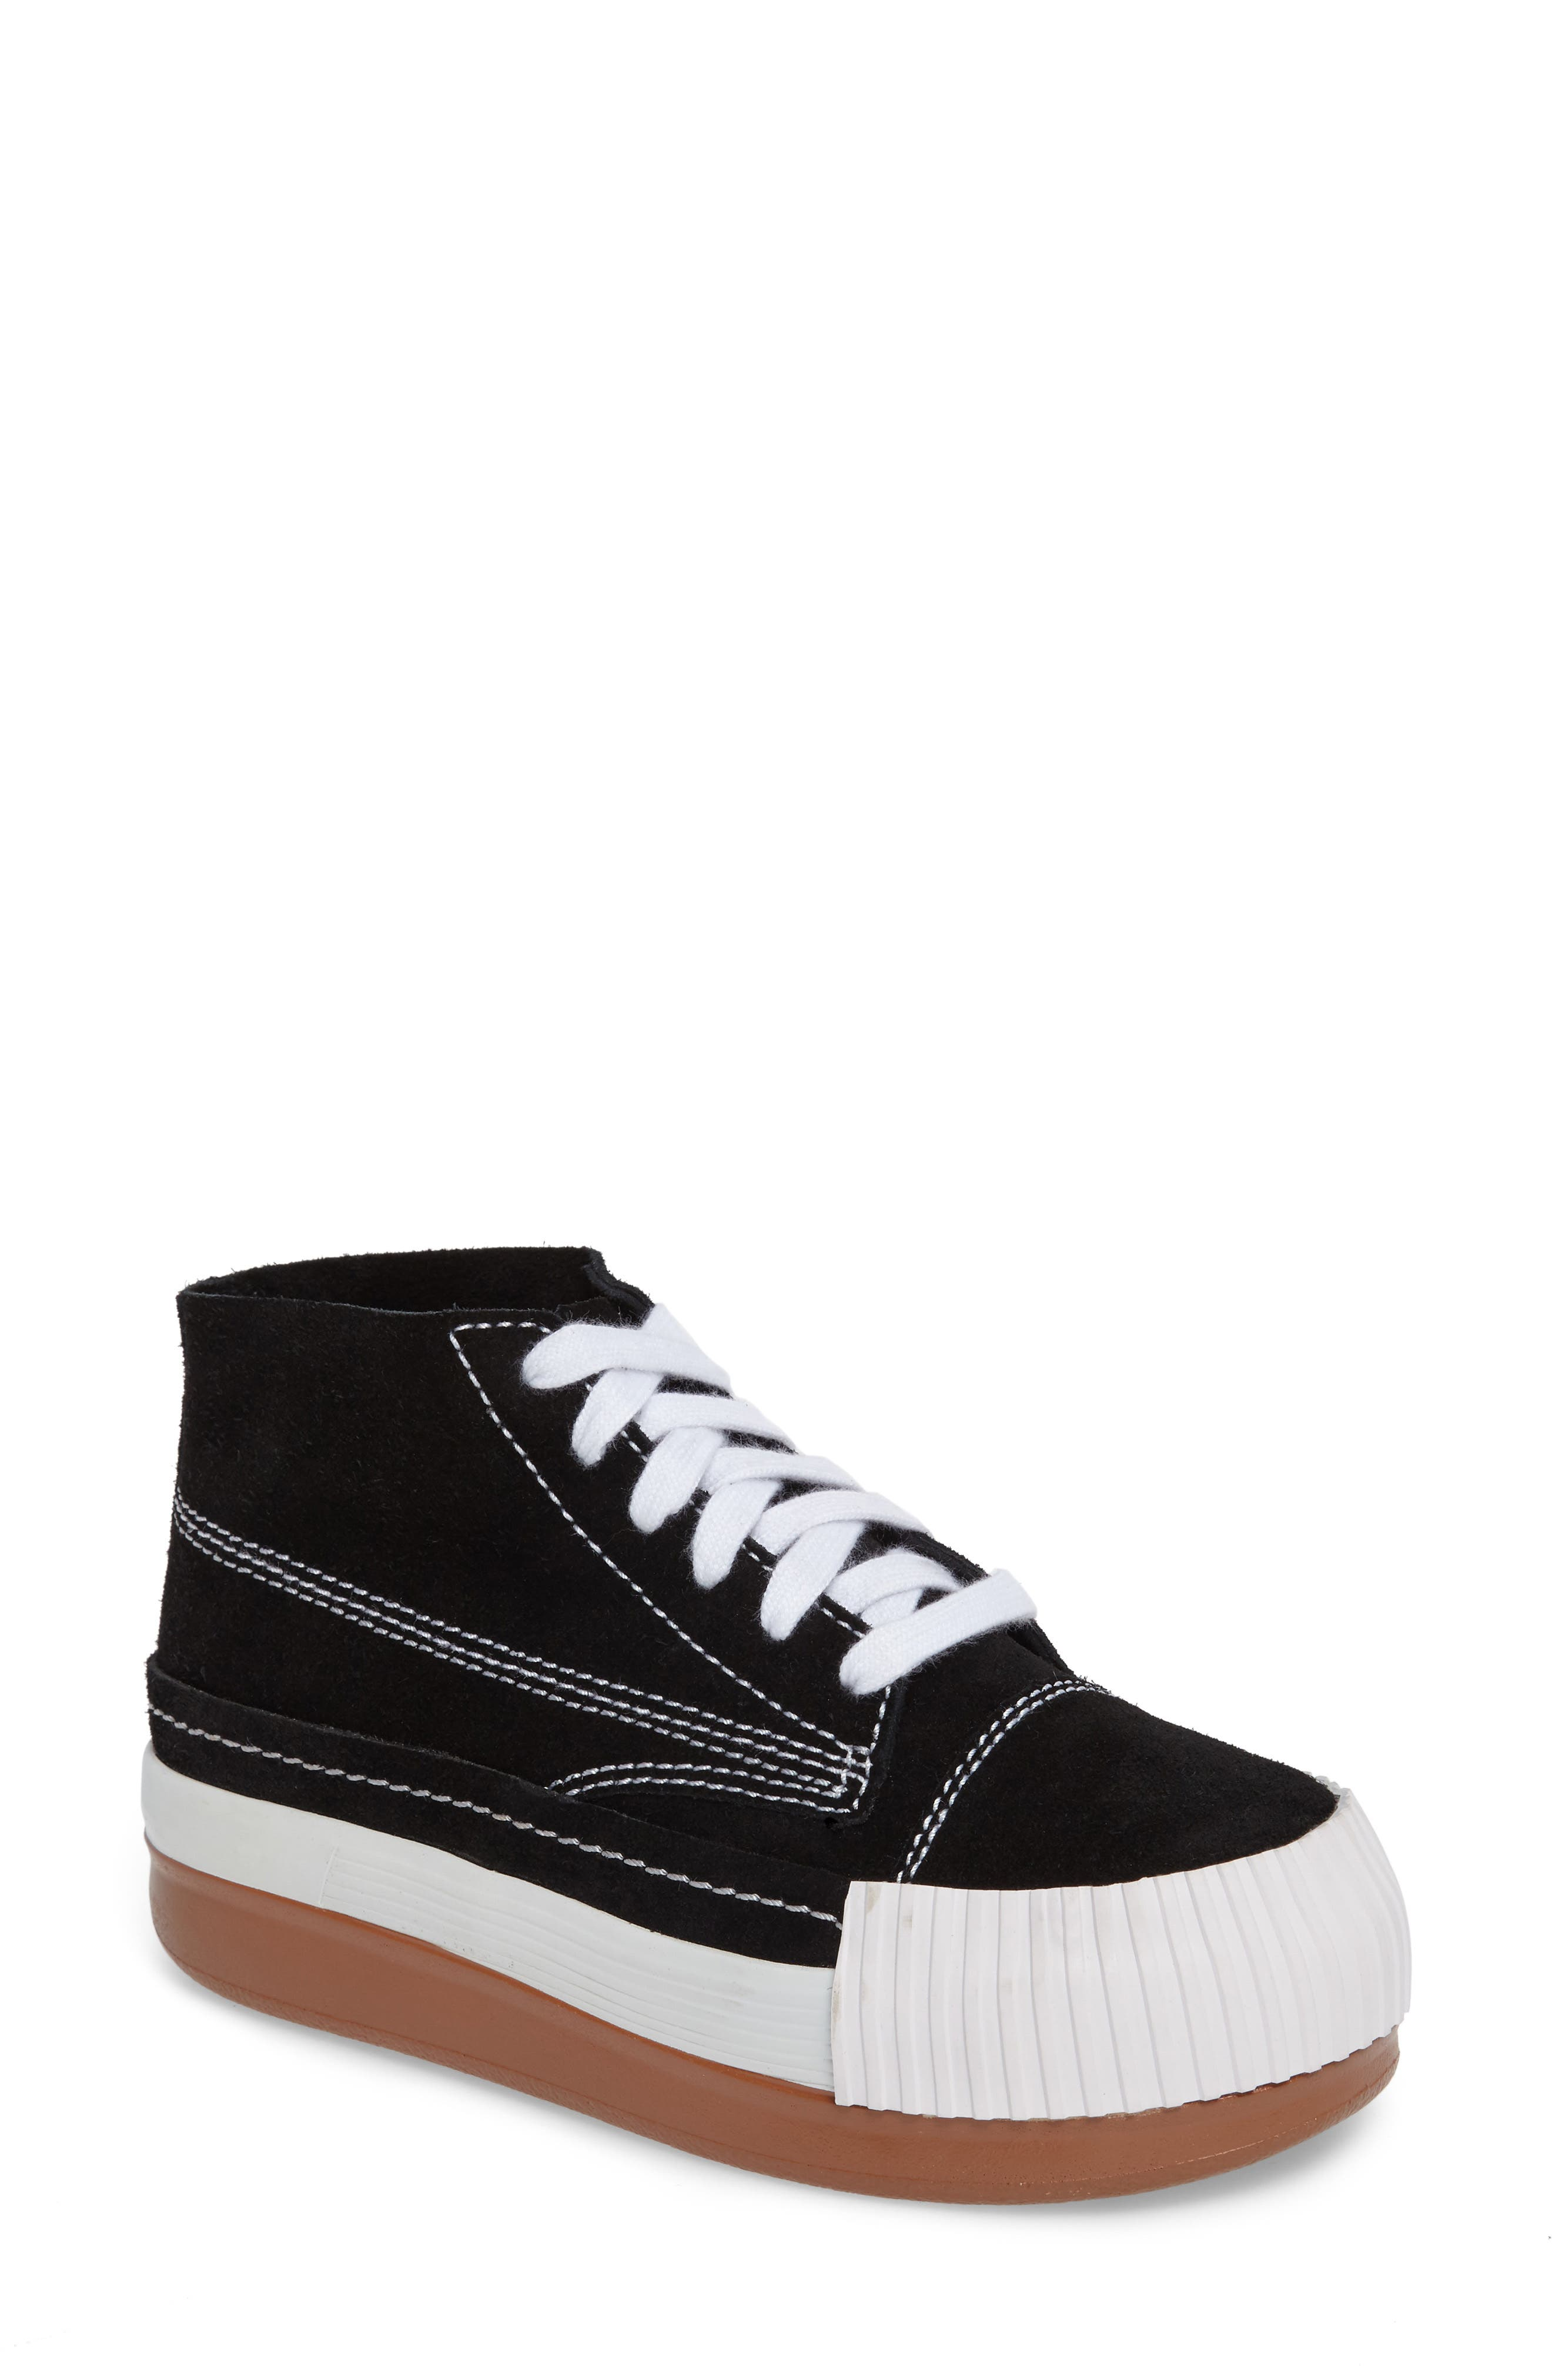 Kickflip Sneaker,                         Main,                         color, Black Suede